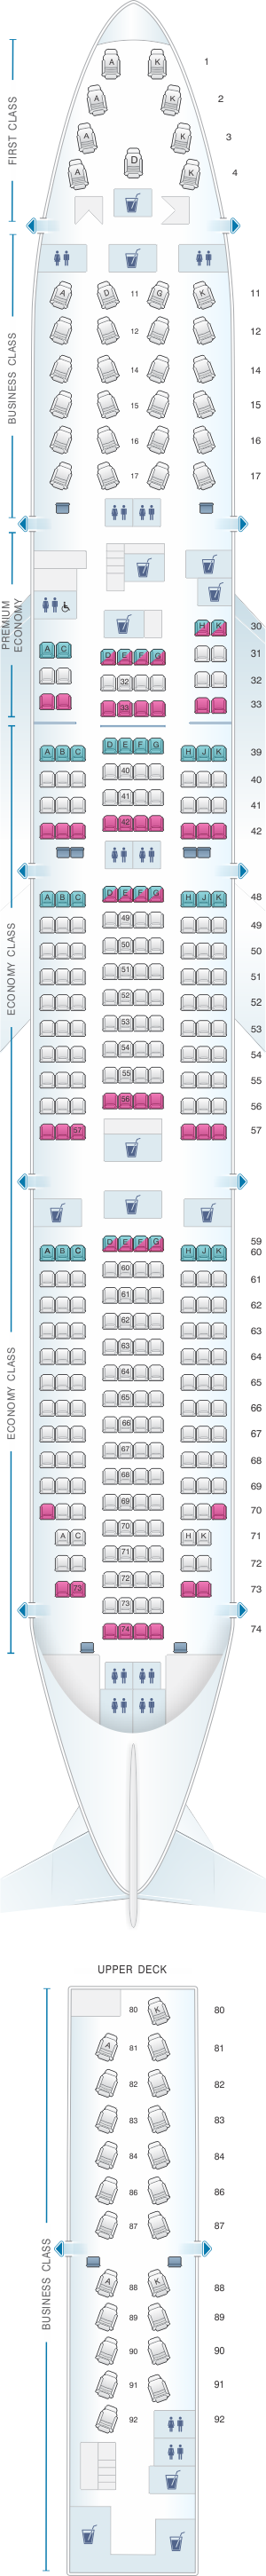 Seat map for Cathay Pacific Airways Boeing B747 400 (74K)